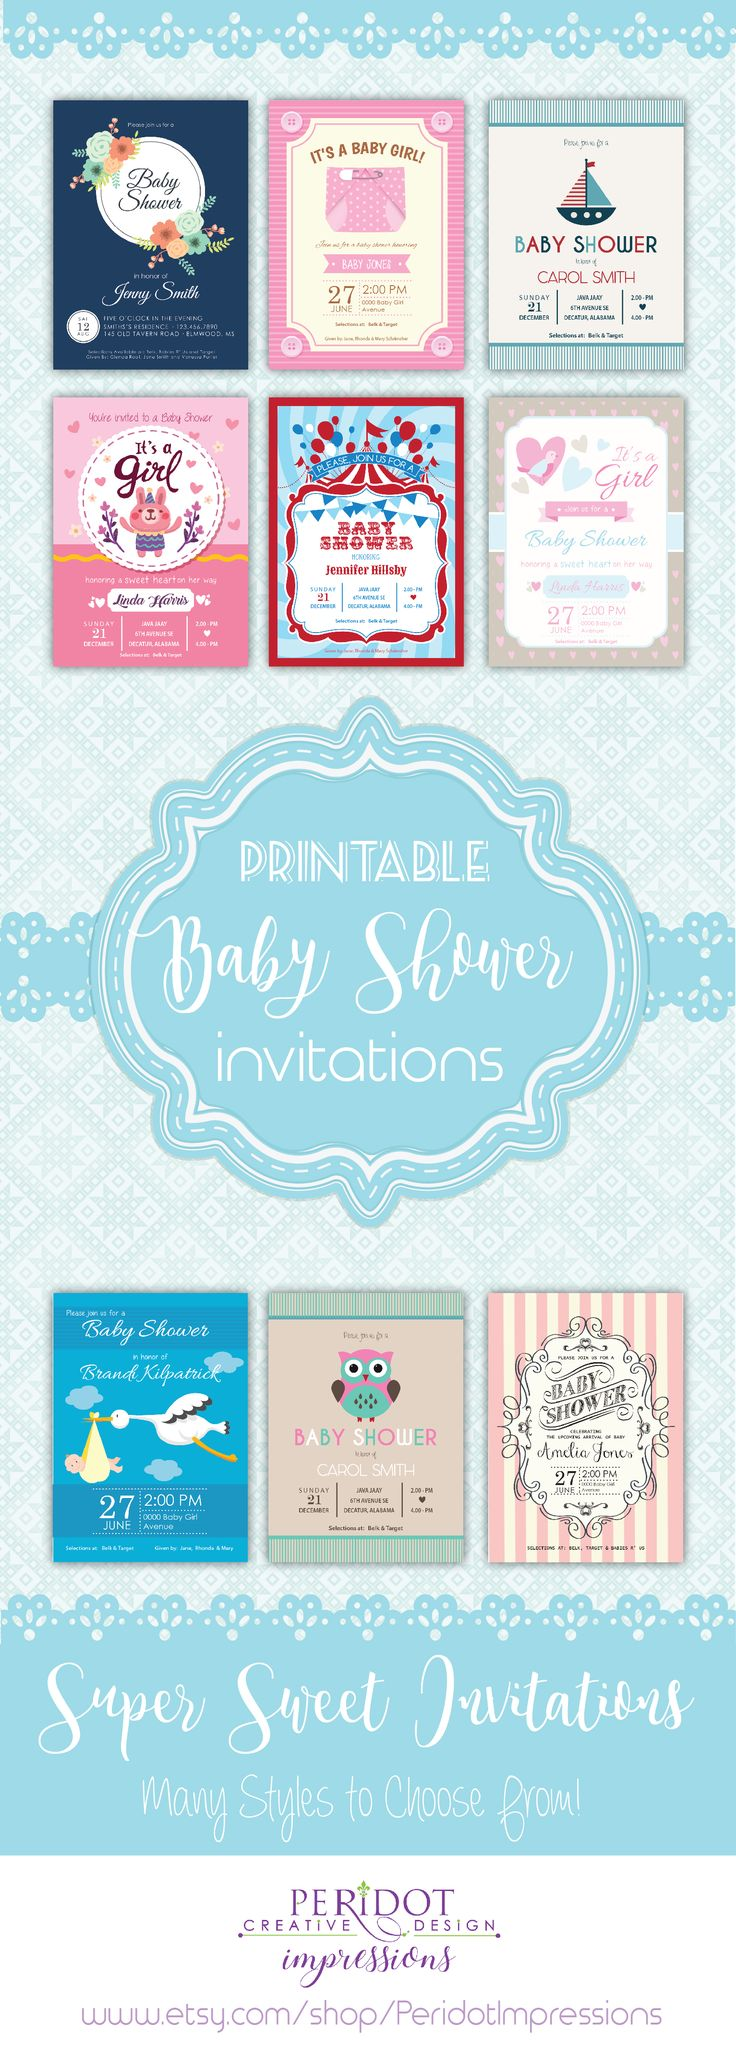 boy baby shower invitations australia%0A Printable Baby Shower Invitations Available Here  Many styles to choose  from  Vintage  Retro